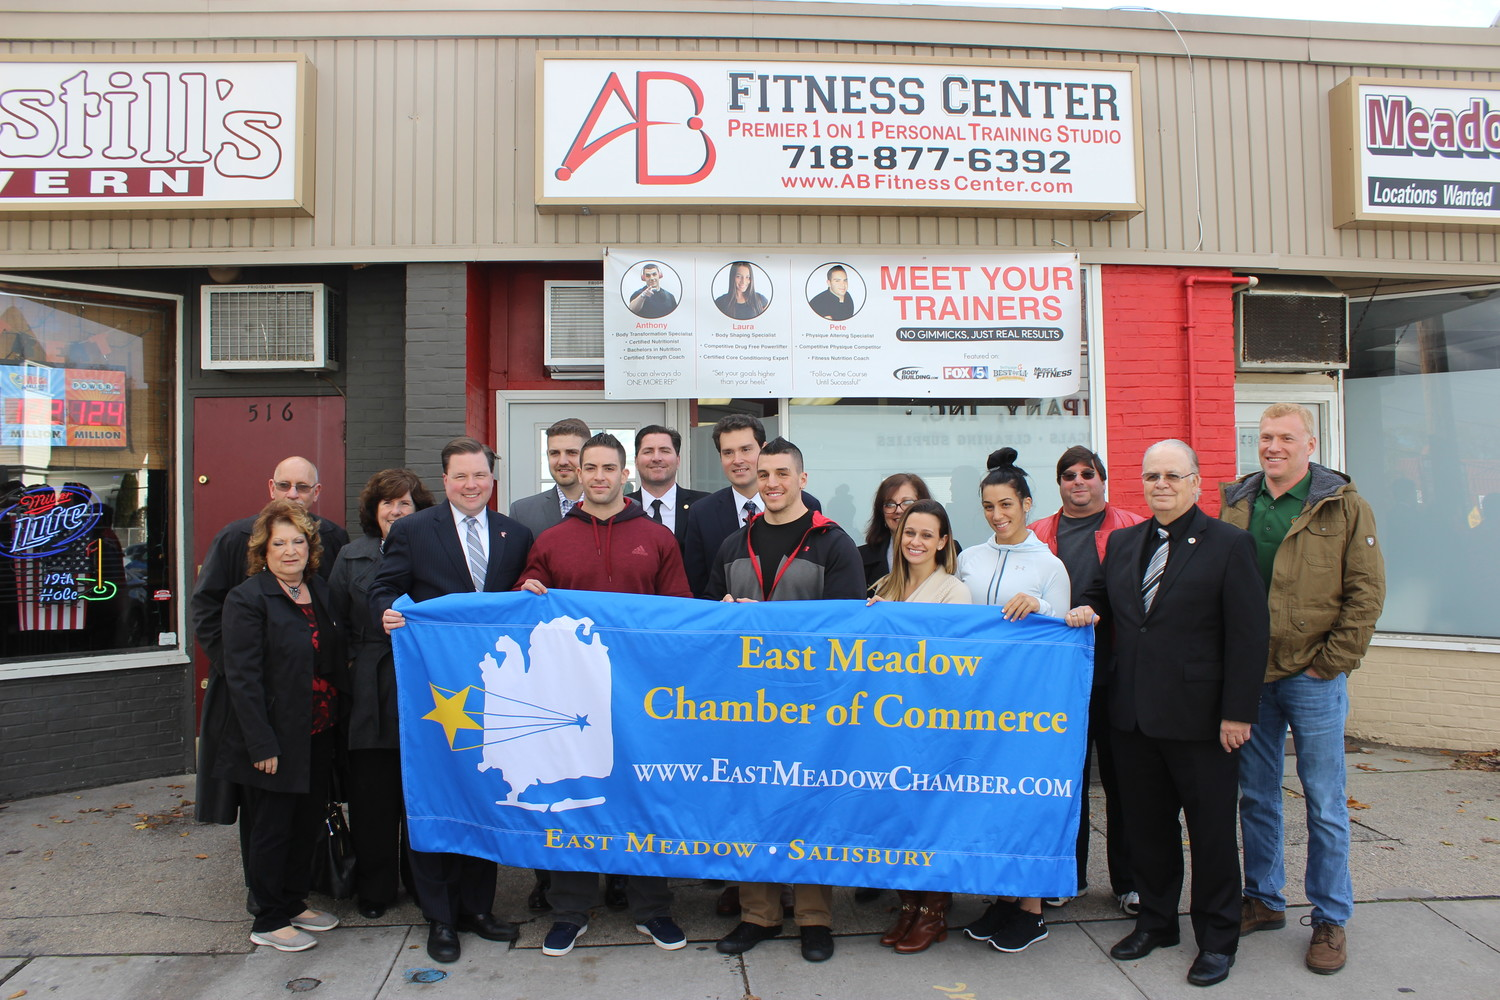 AB Fitness Center recently opened on East Meadow Avenue and was honored with a ribbon cutting presented by the East Meadow Chamber of Commerce on Nov. 16.